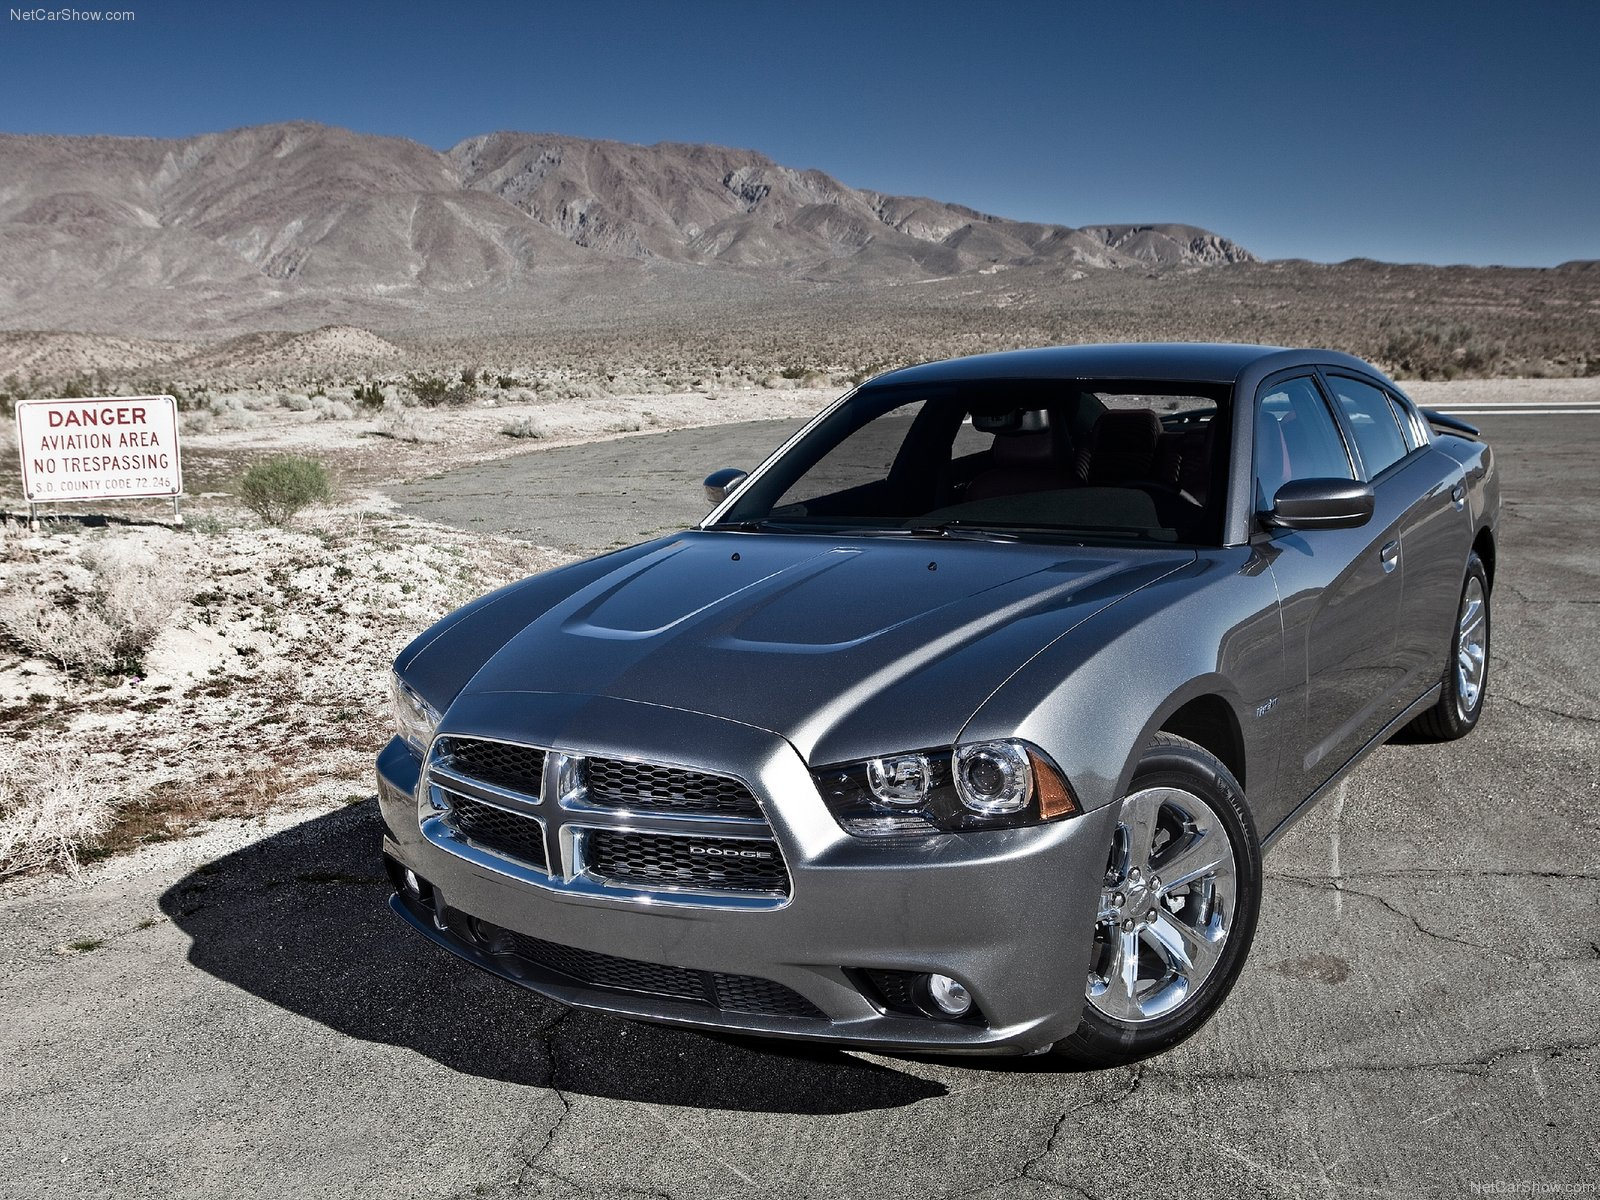 dodge charger 2011 hd wallpaper dodge charger 2011 hd wallpaper 1600x1200